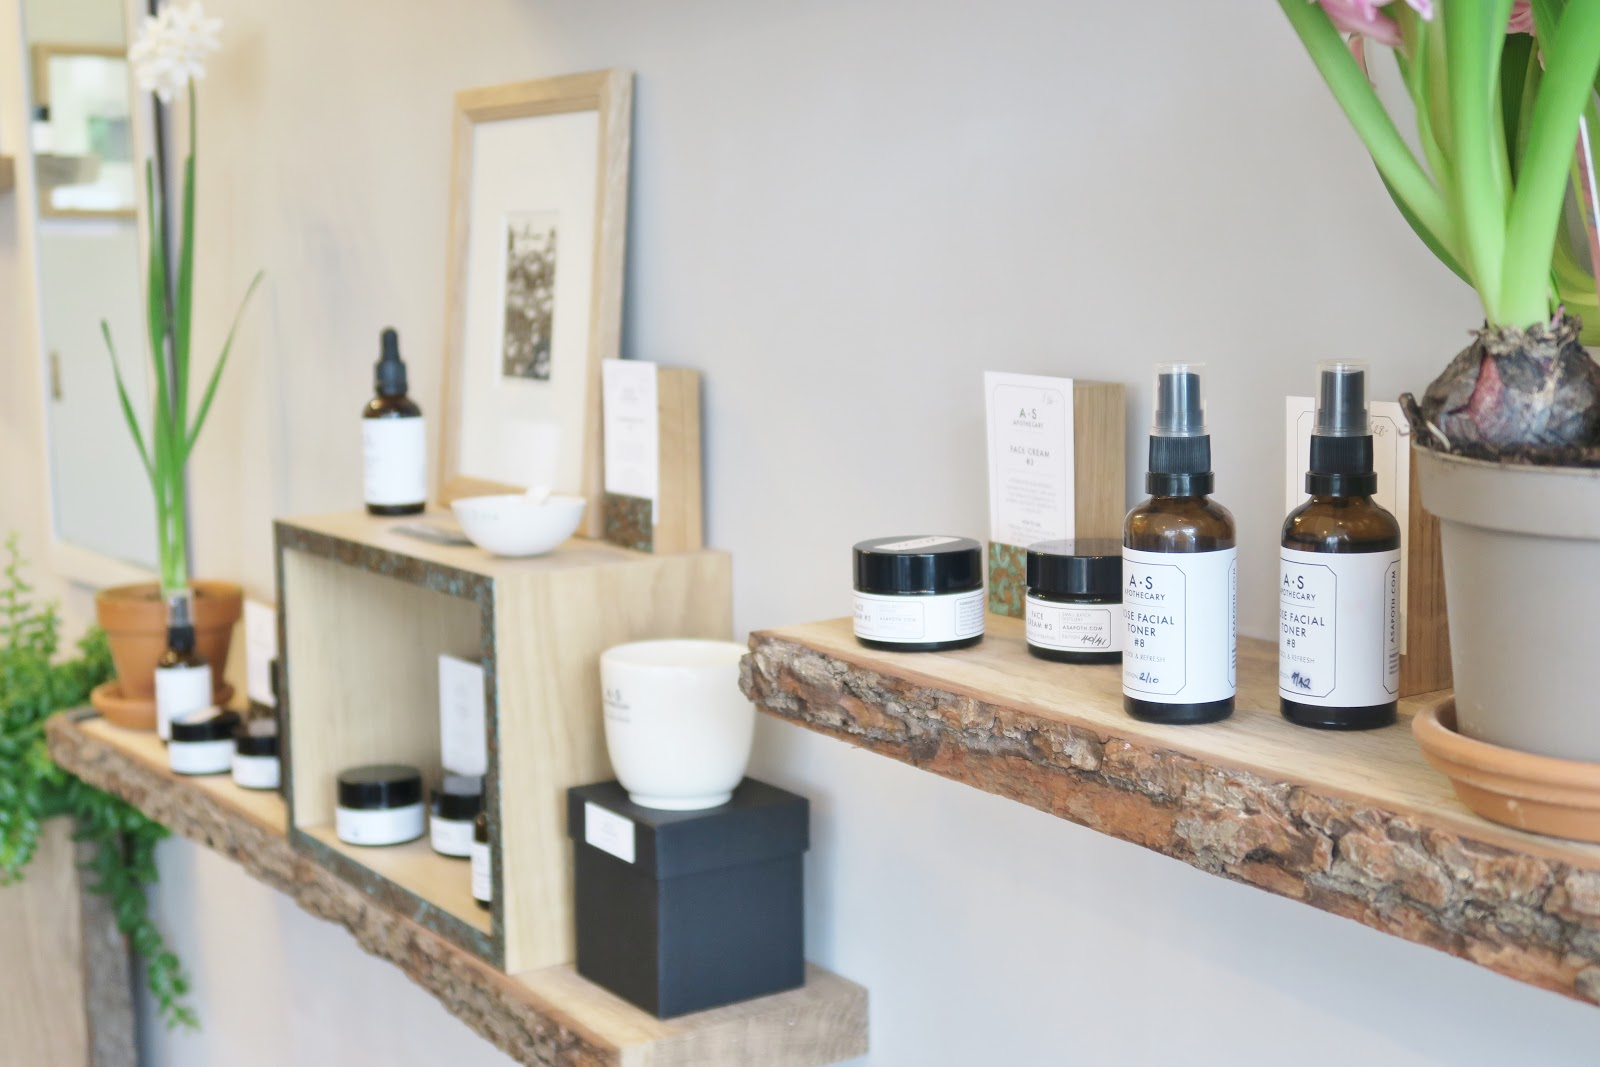 http://www.thisnaturalbee.co.uk/2017/01/asapothecary-flagship-shop.html